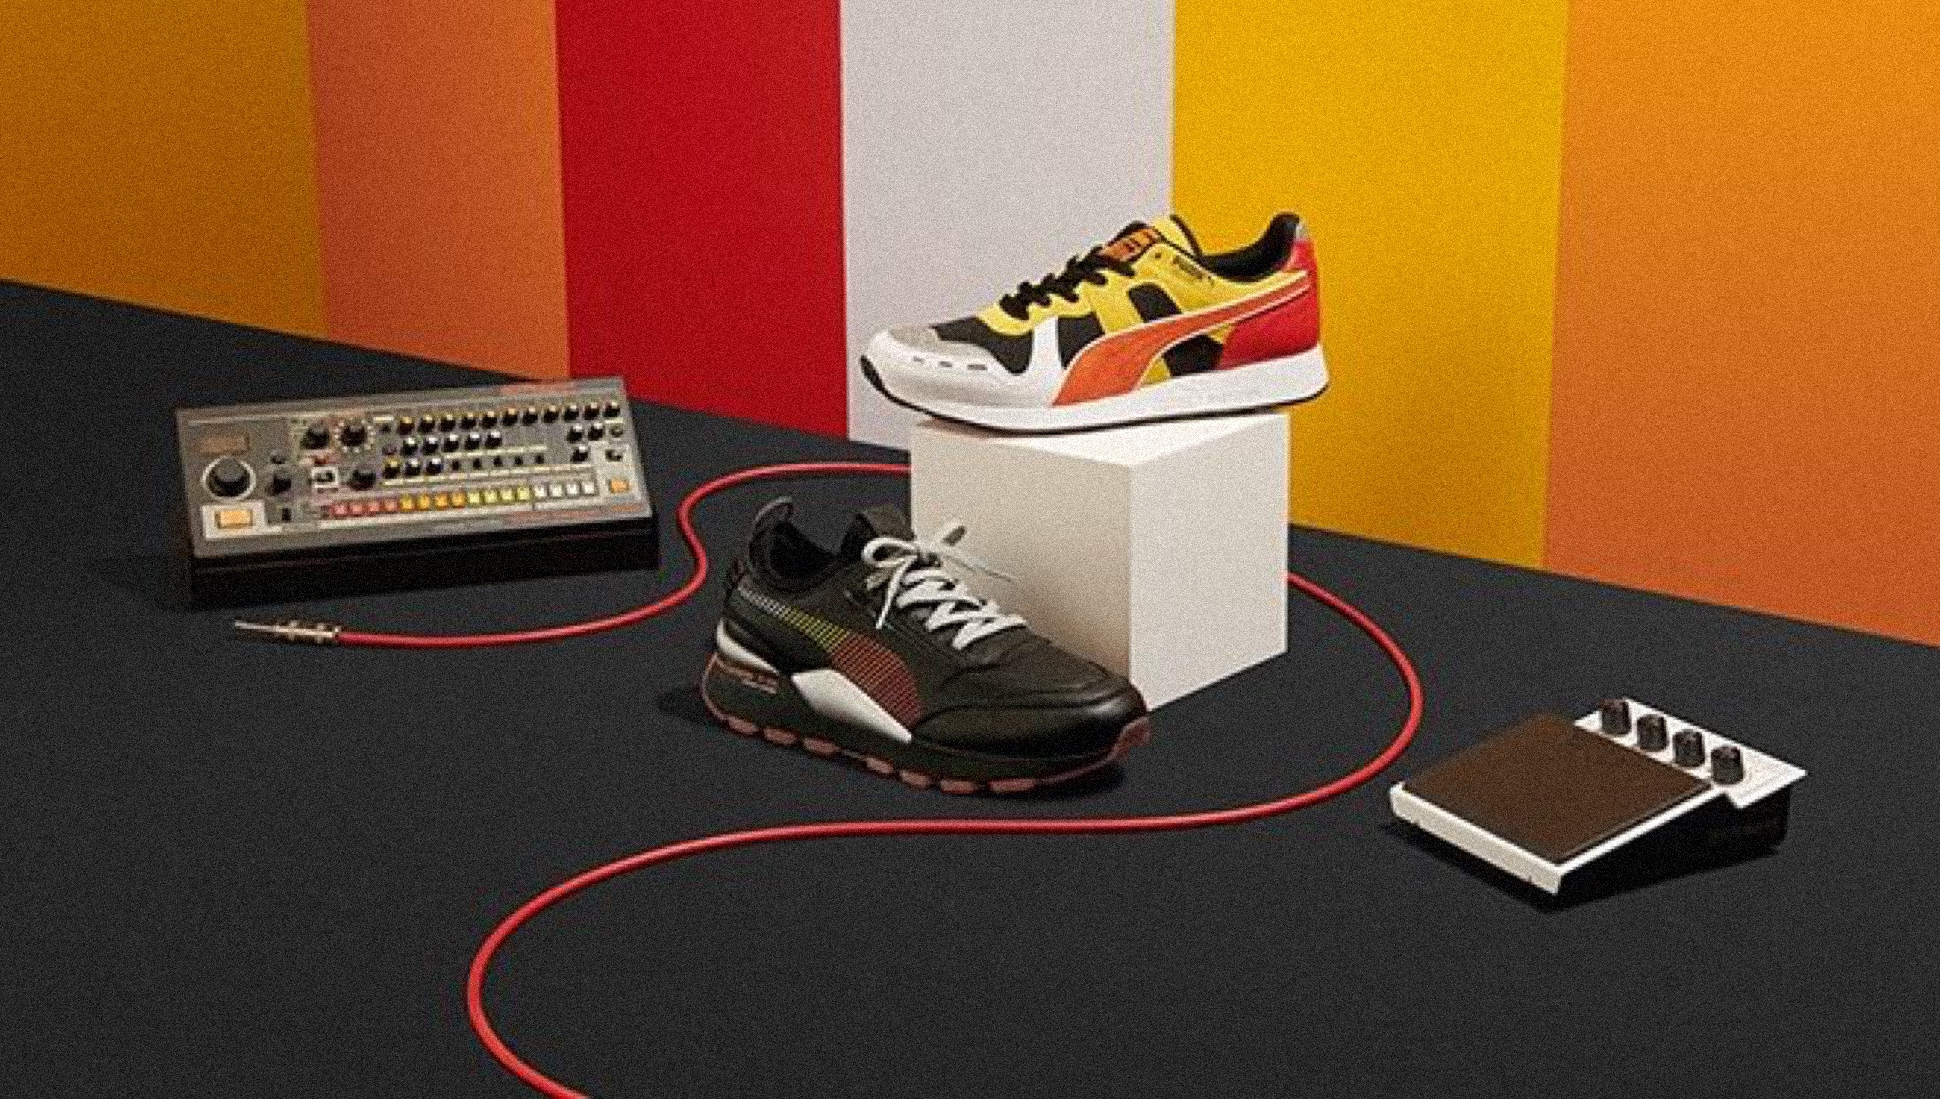 Roland and Puma reveal a new TR 808 inspired sneaker